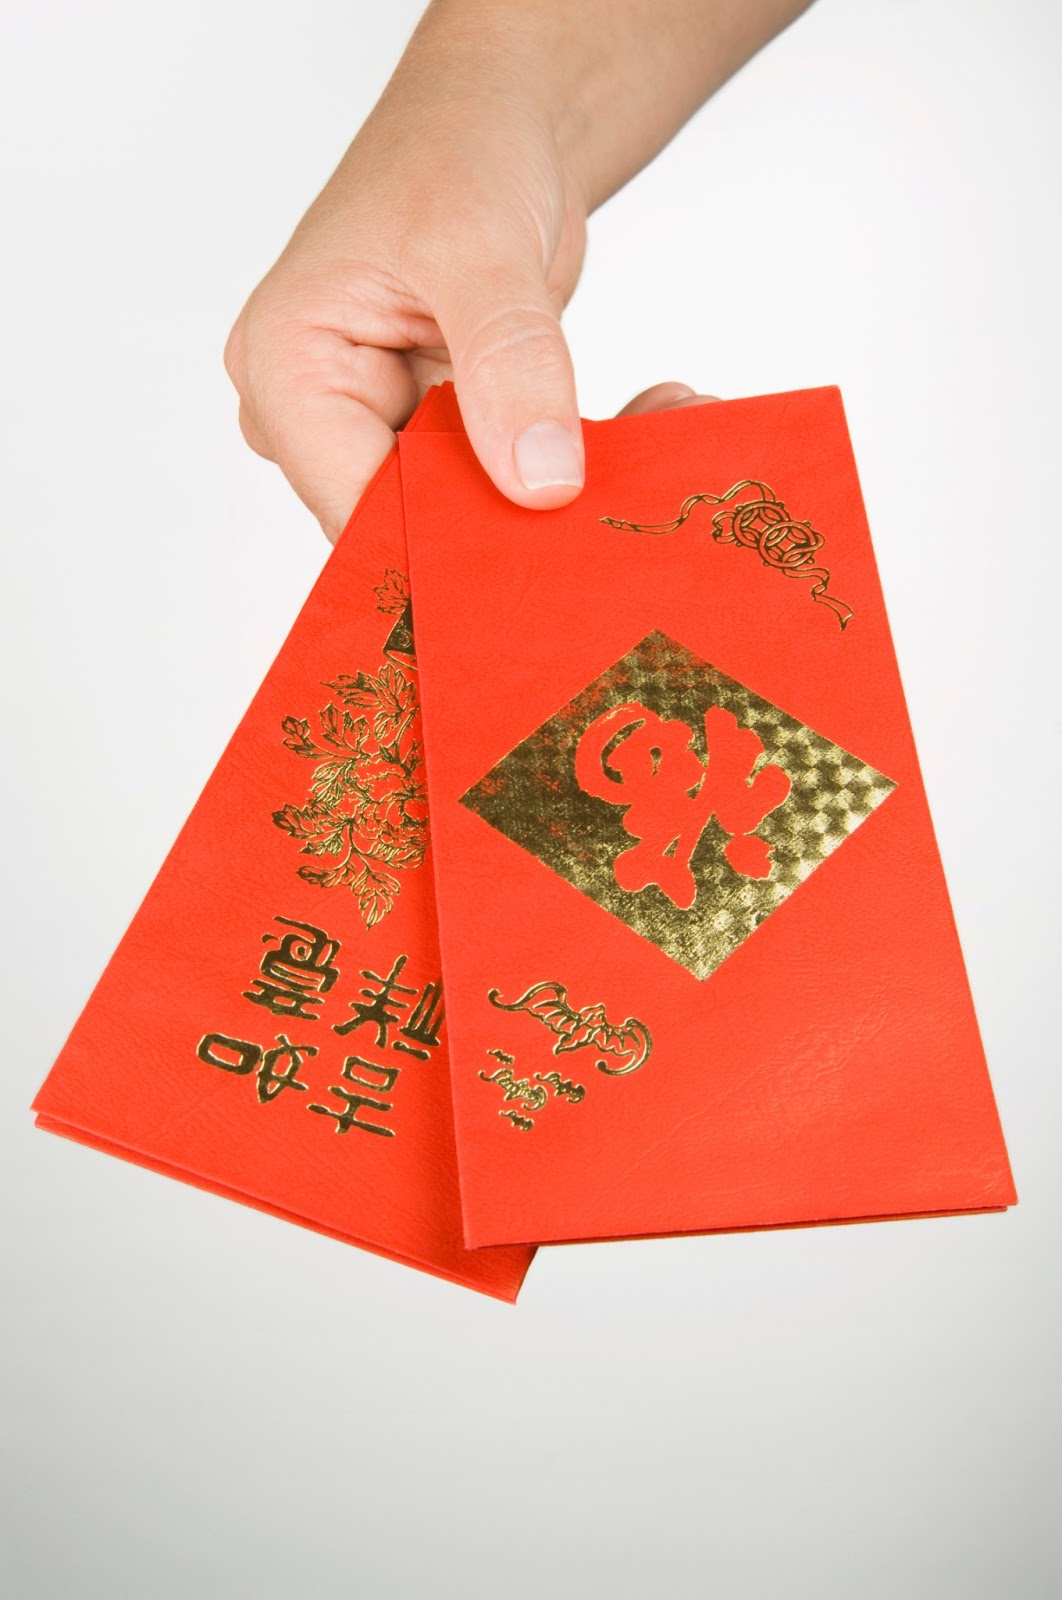 Lee SeeEnvelopes Chinese New Year Signs and Symbols. 1062 x 1600.Chinese New Year Symbols For Kids